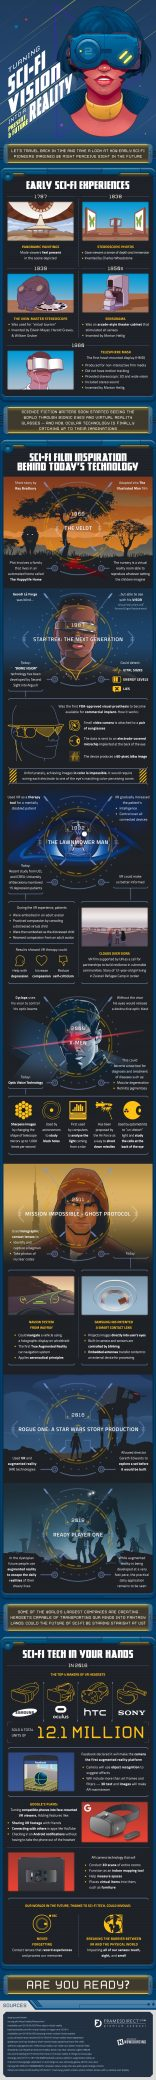 How Can Your Business Utilize Virtual Reality In The New Year? [Infographic]